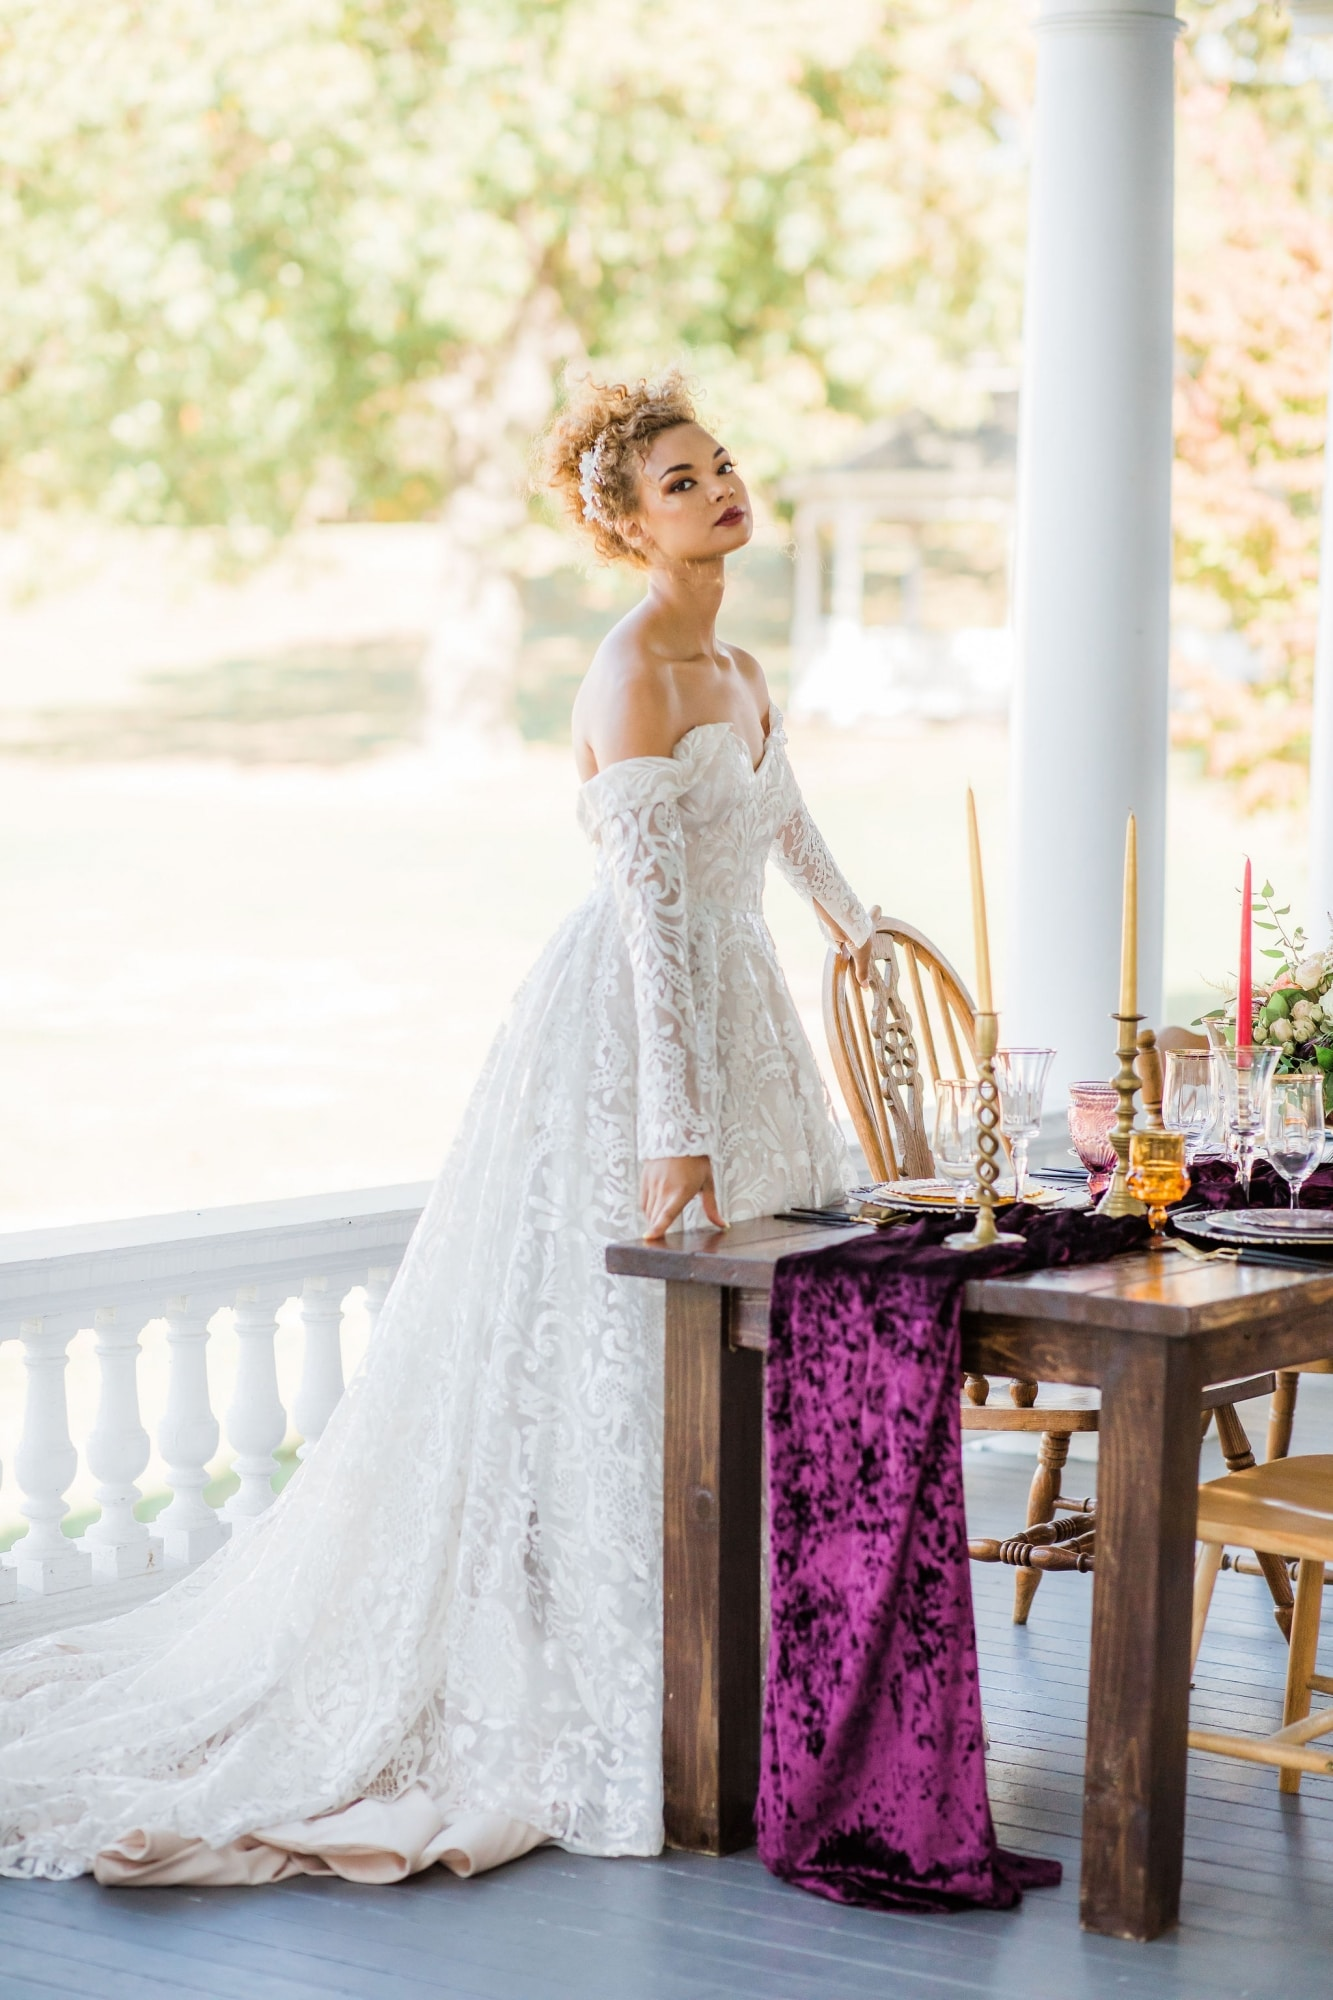 bride leaning over table setup with royal purple table runner that touches the floor